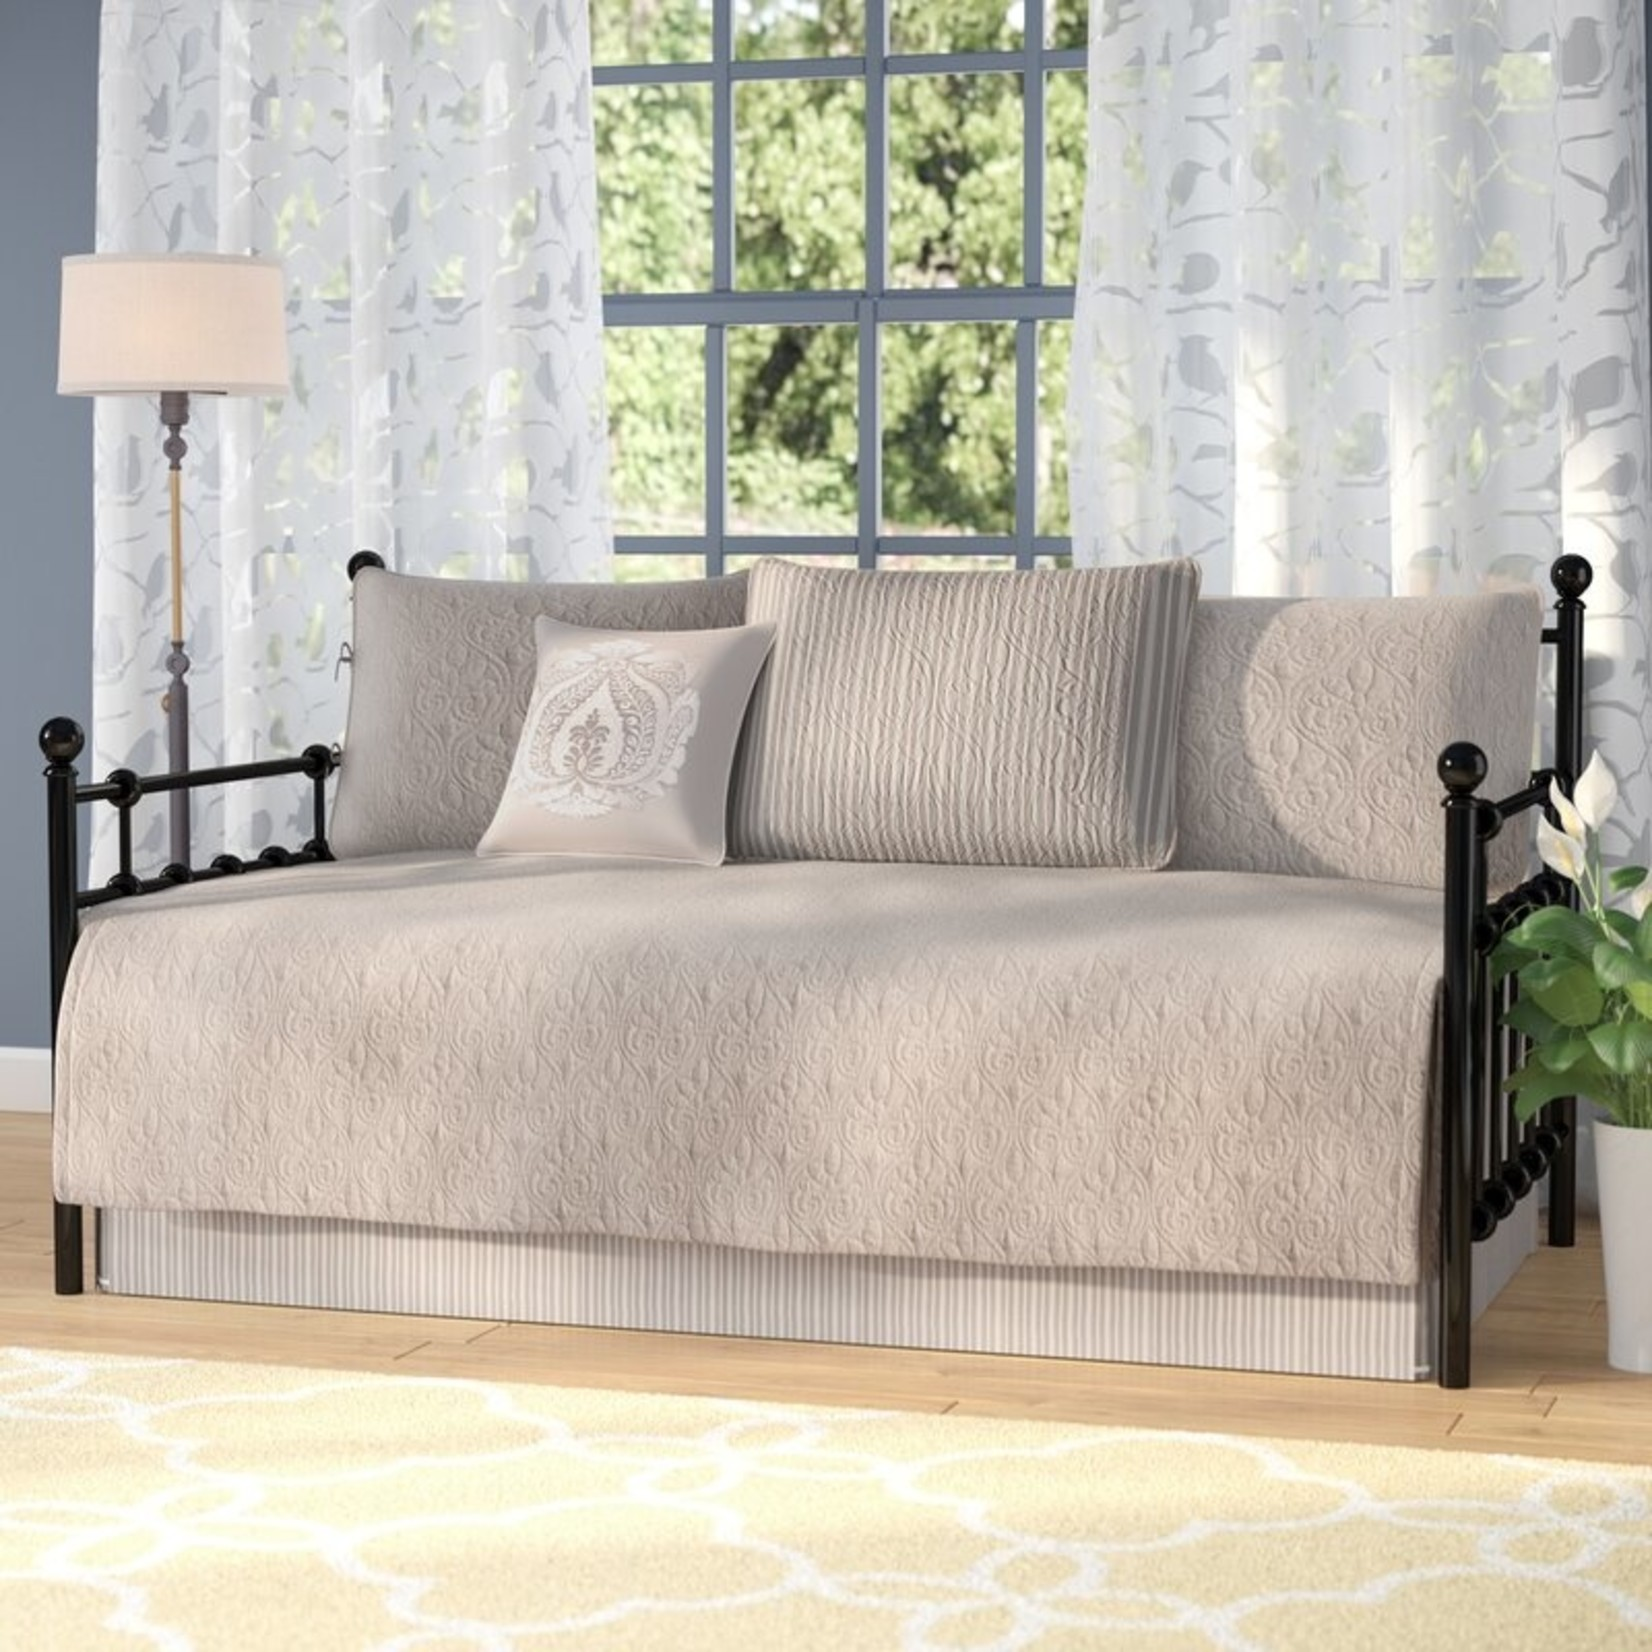 *Daybed -6 Piece -Epping Reversible Coverlet Set - Khak - Final Sale - Final Salei